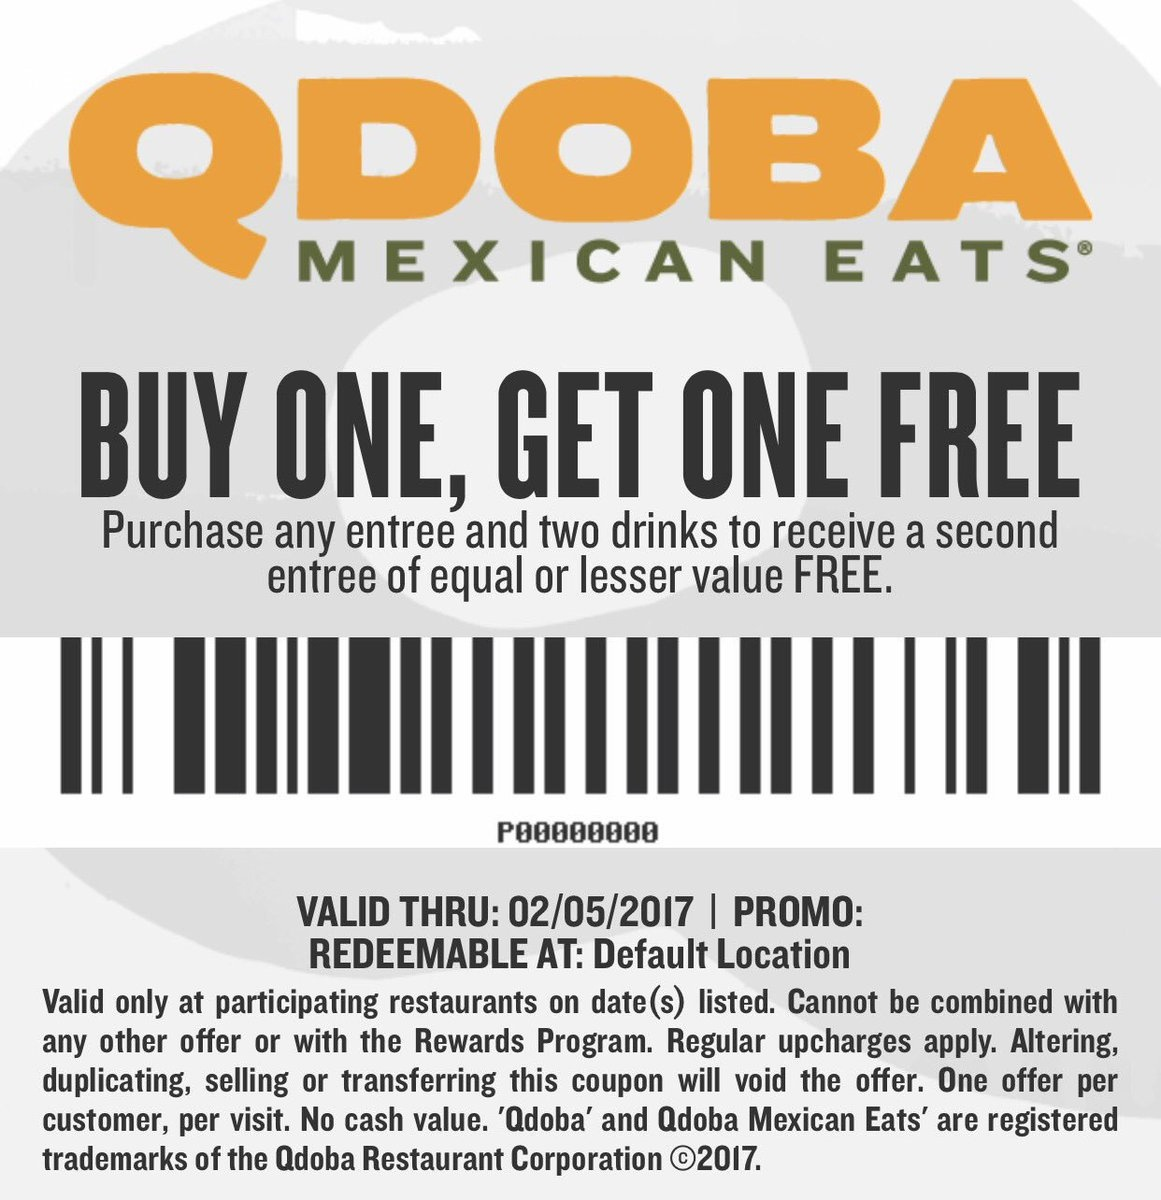 Qdoba Online Coupons | Printable Coupons Online - Free Printable Dave And Busters Coupons